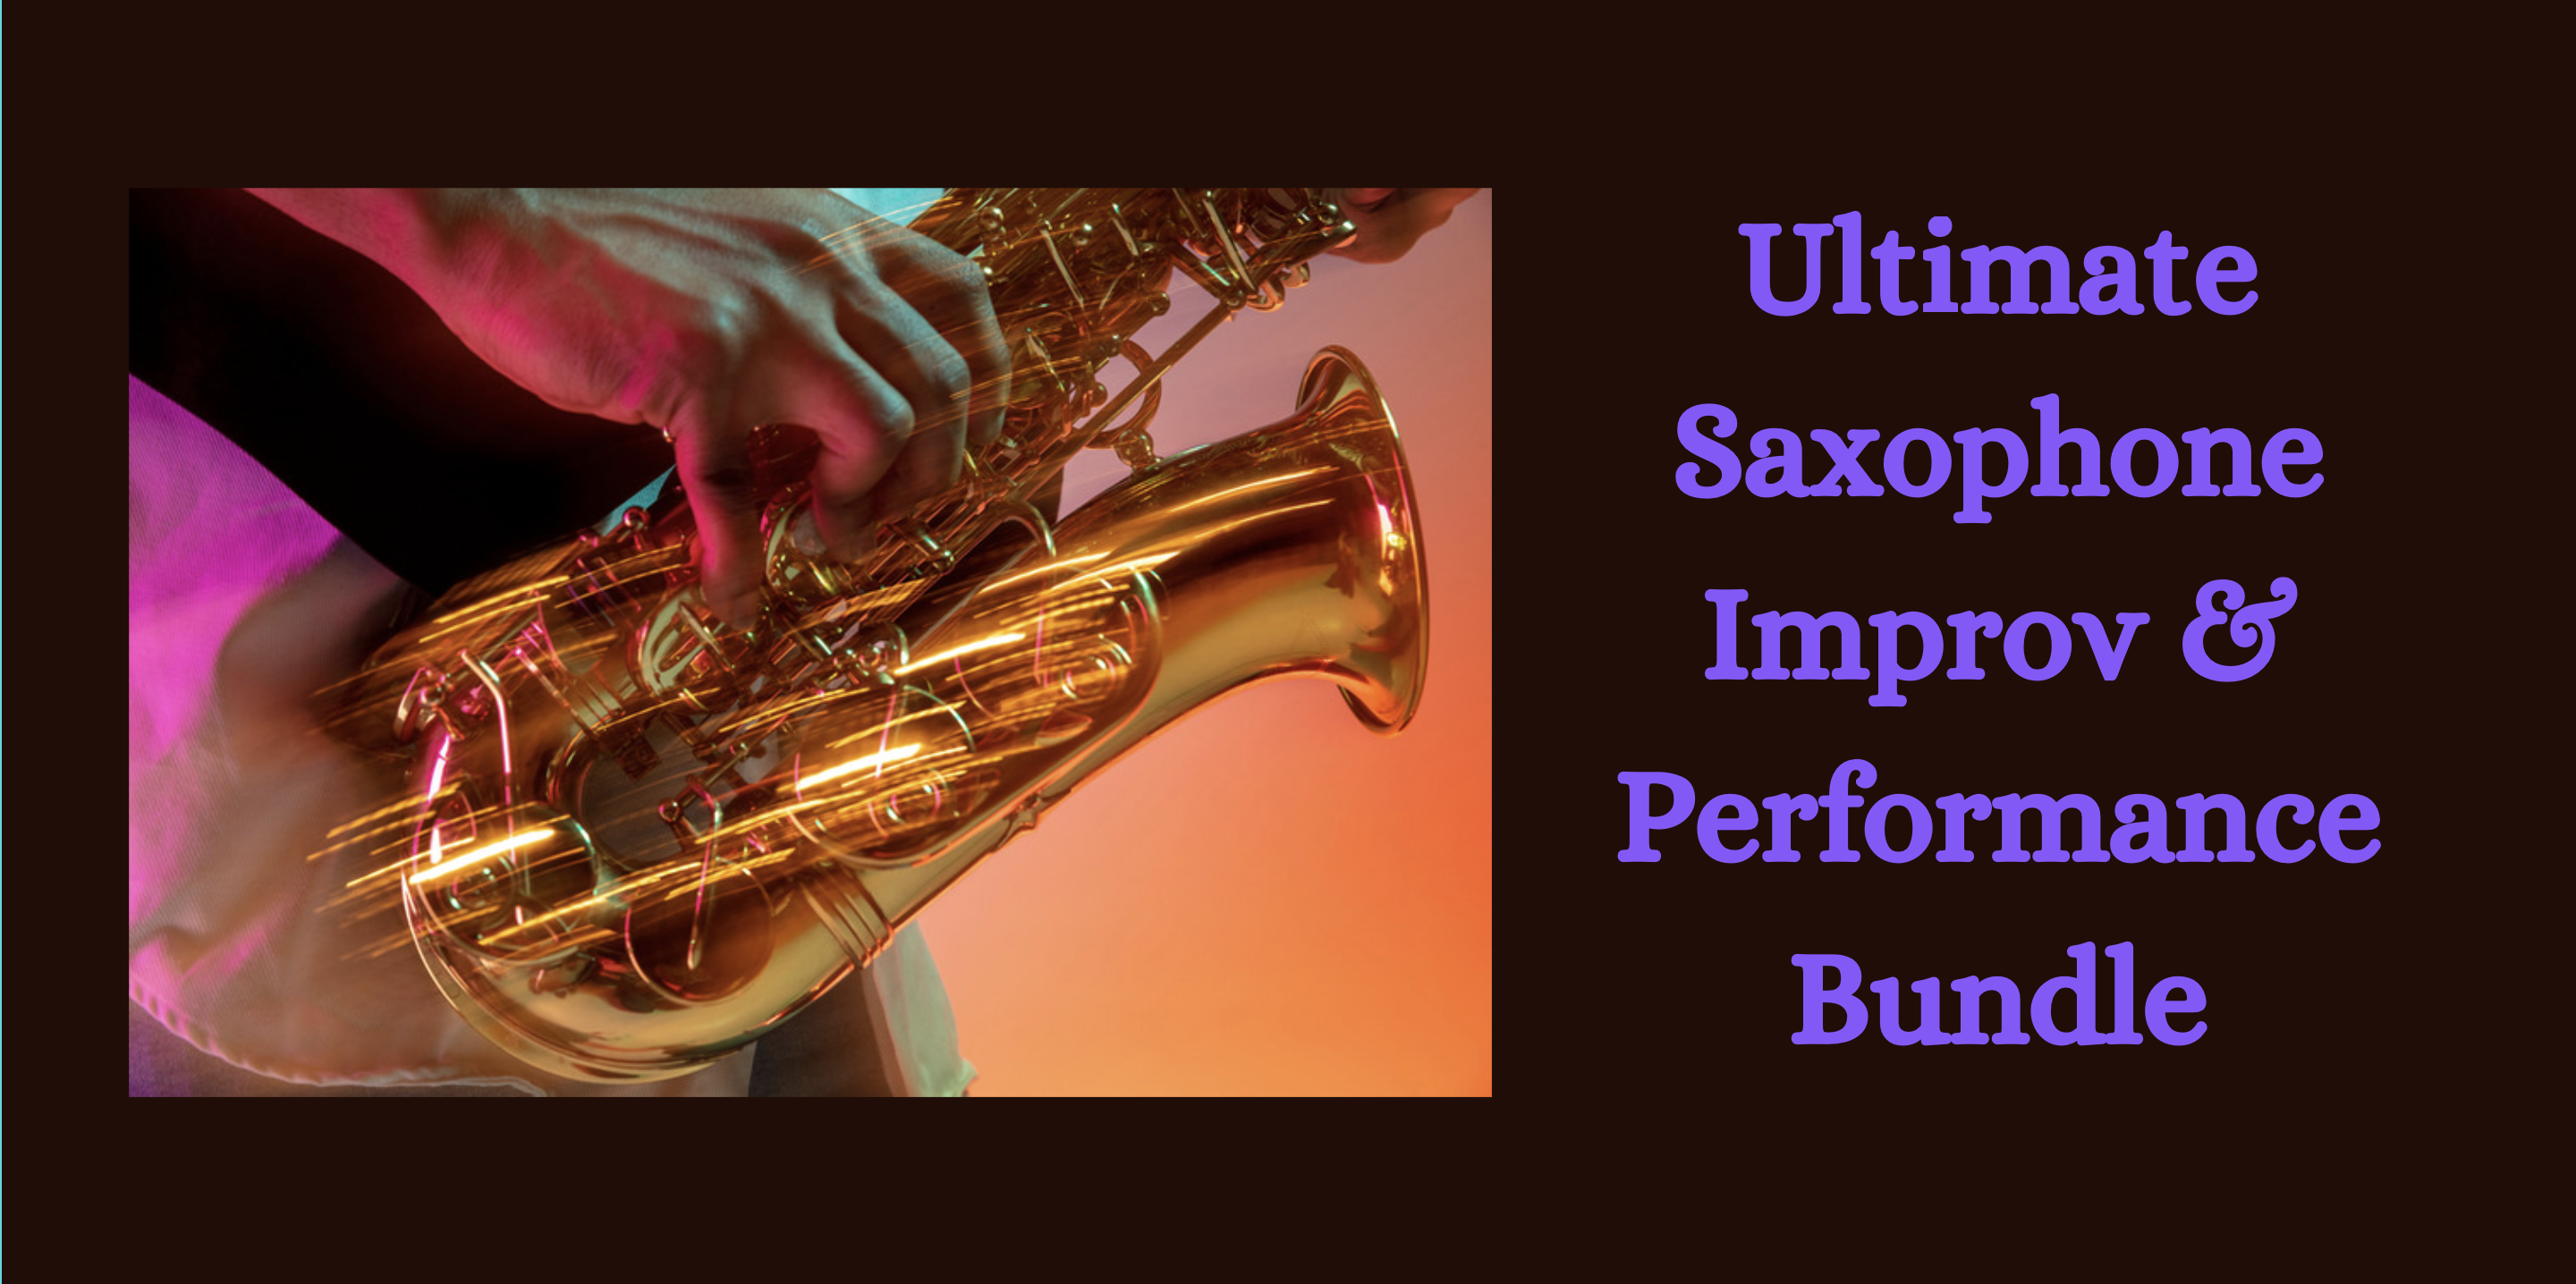 Ultimate Saxophone Improv & Performance Bundle